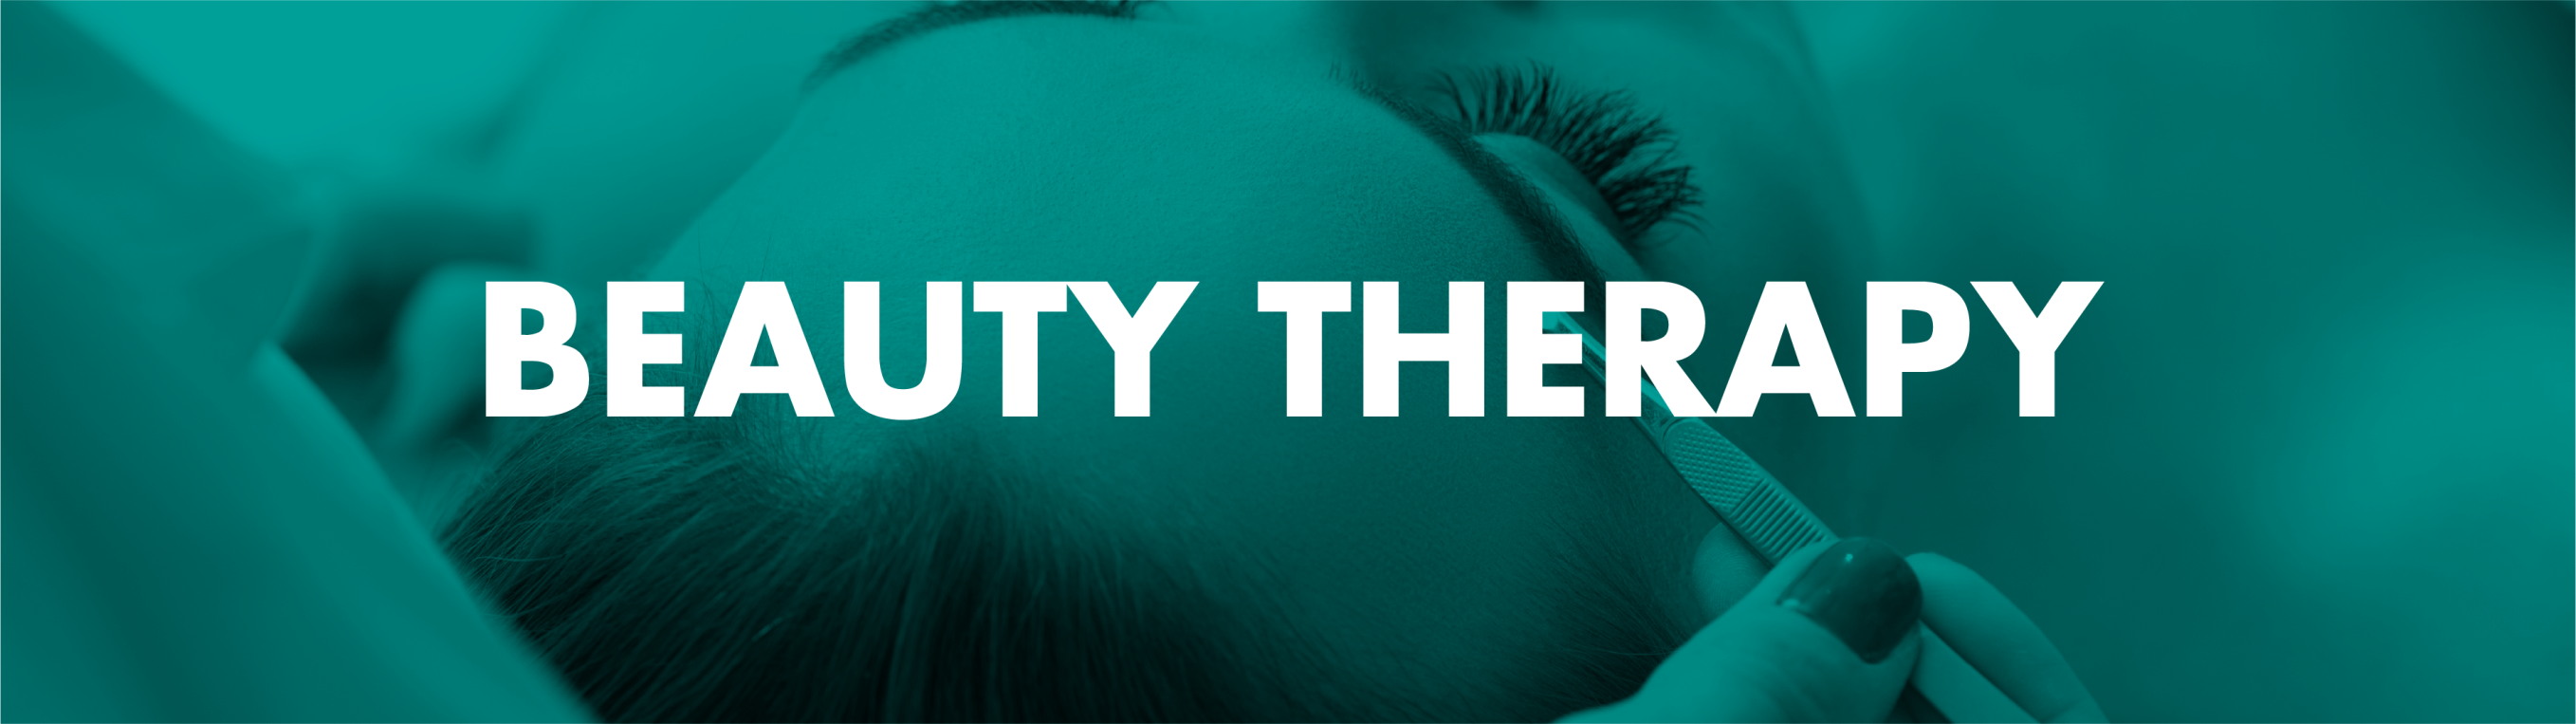 Beauty Therapy Header